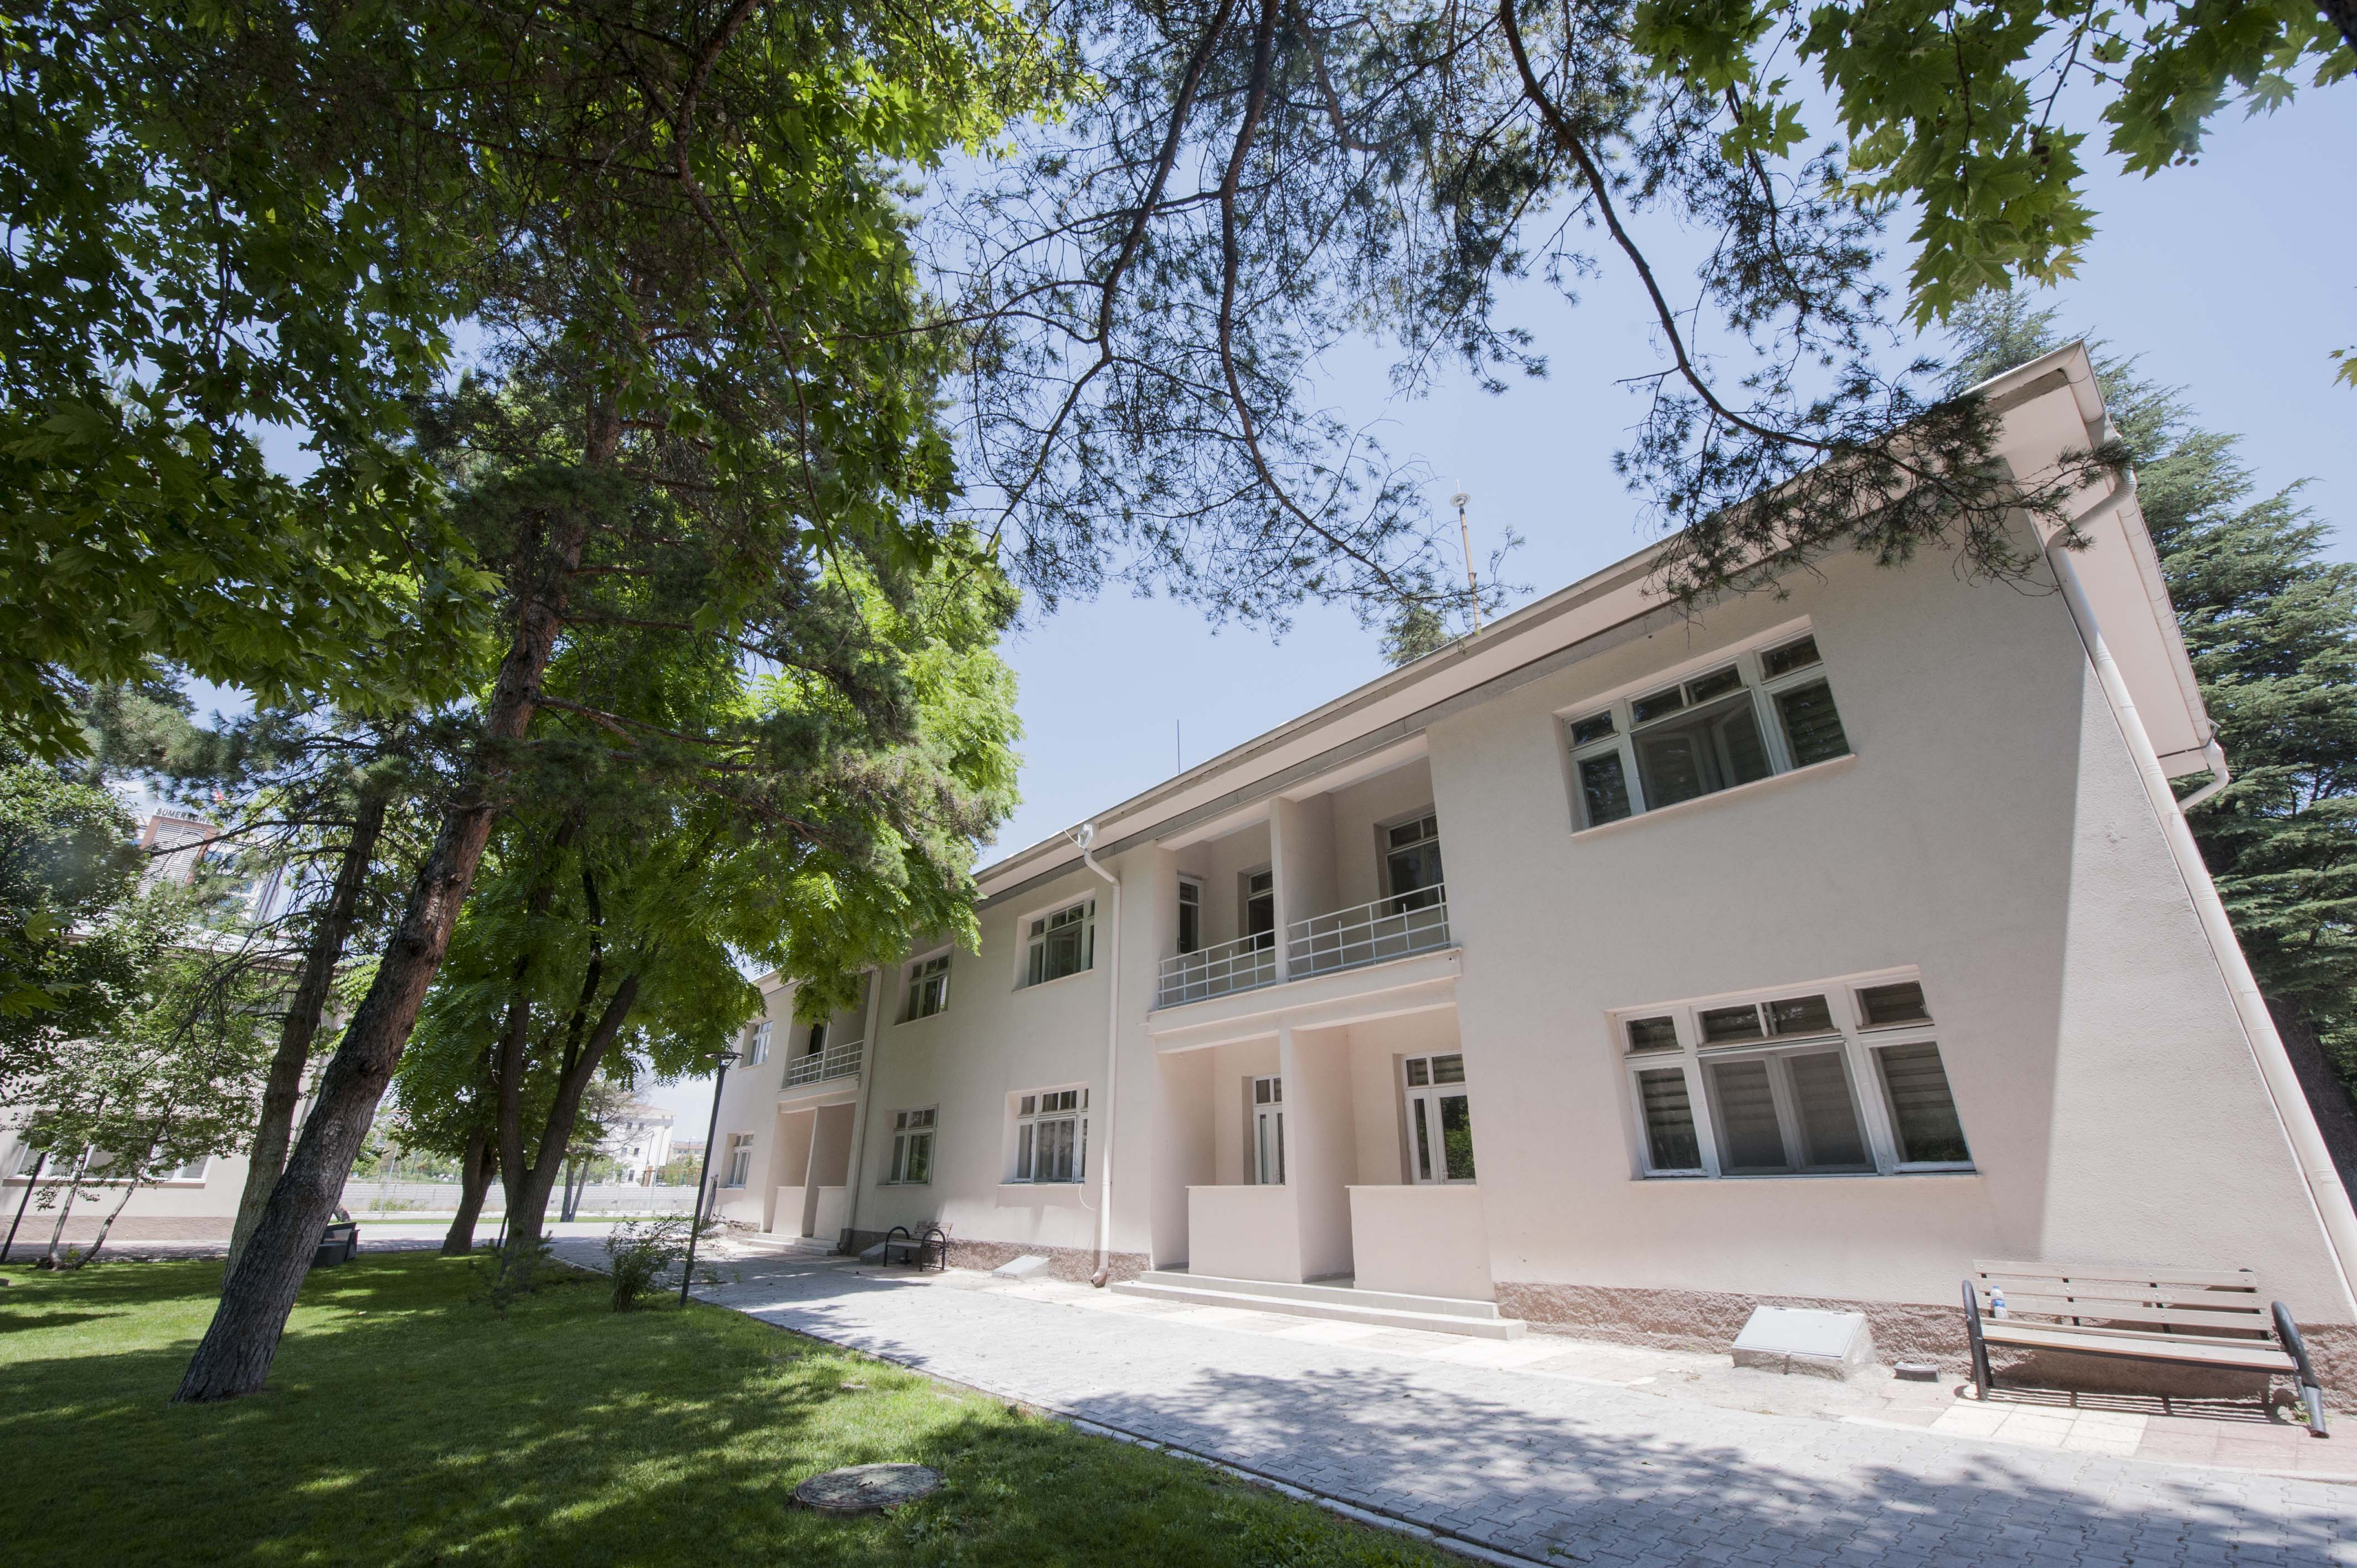 Abdullah Gül University, student dorms, student village, on-campus accommodation